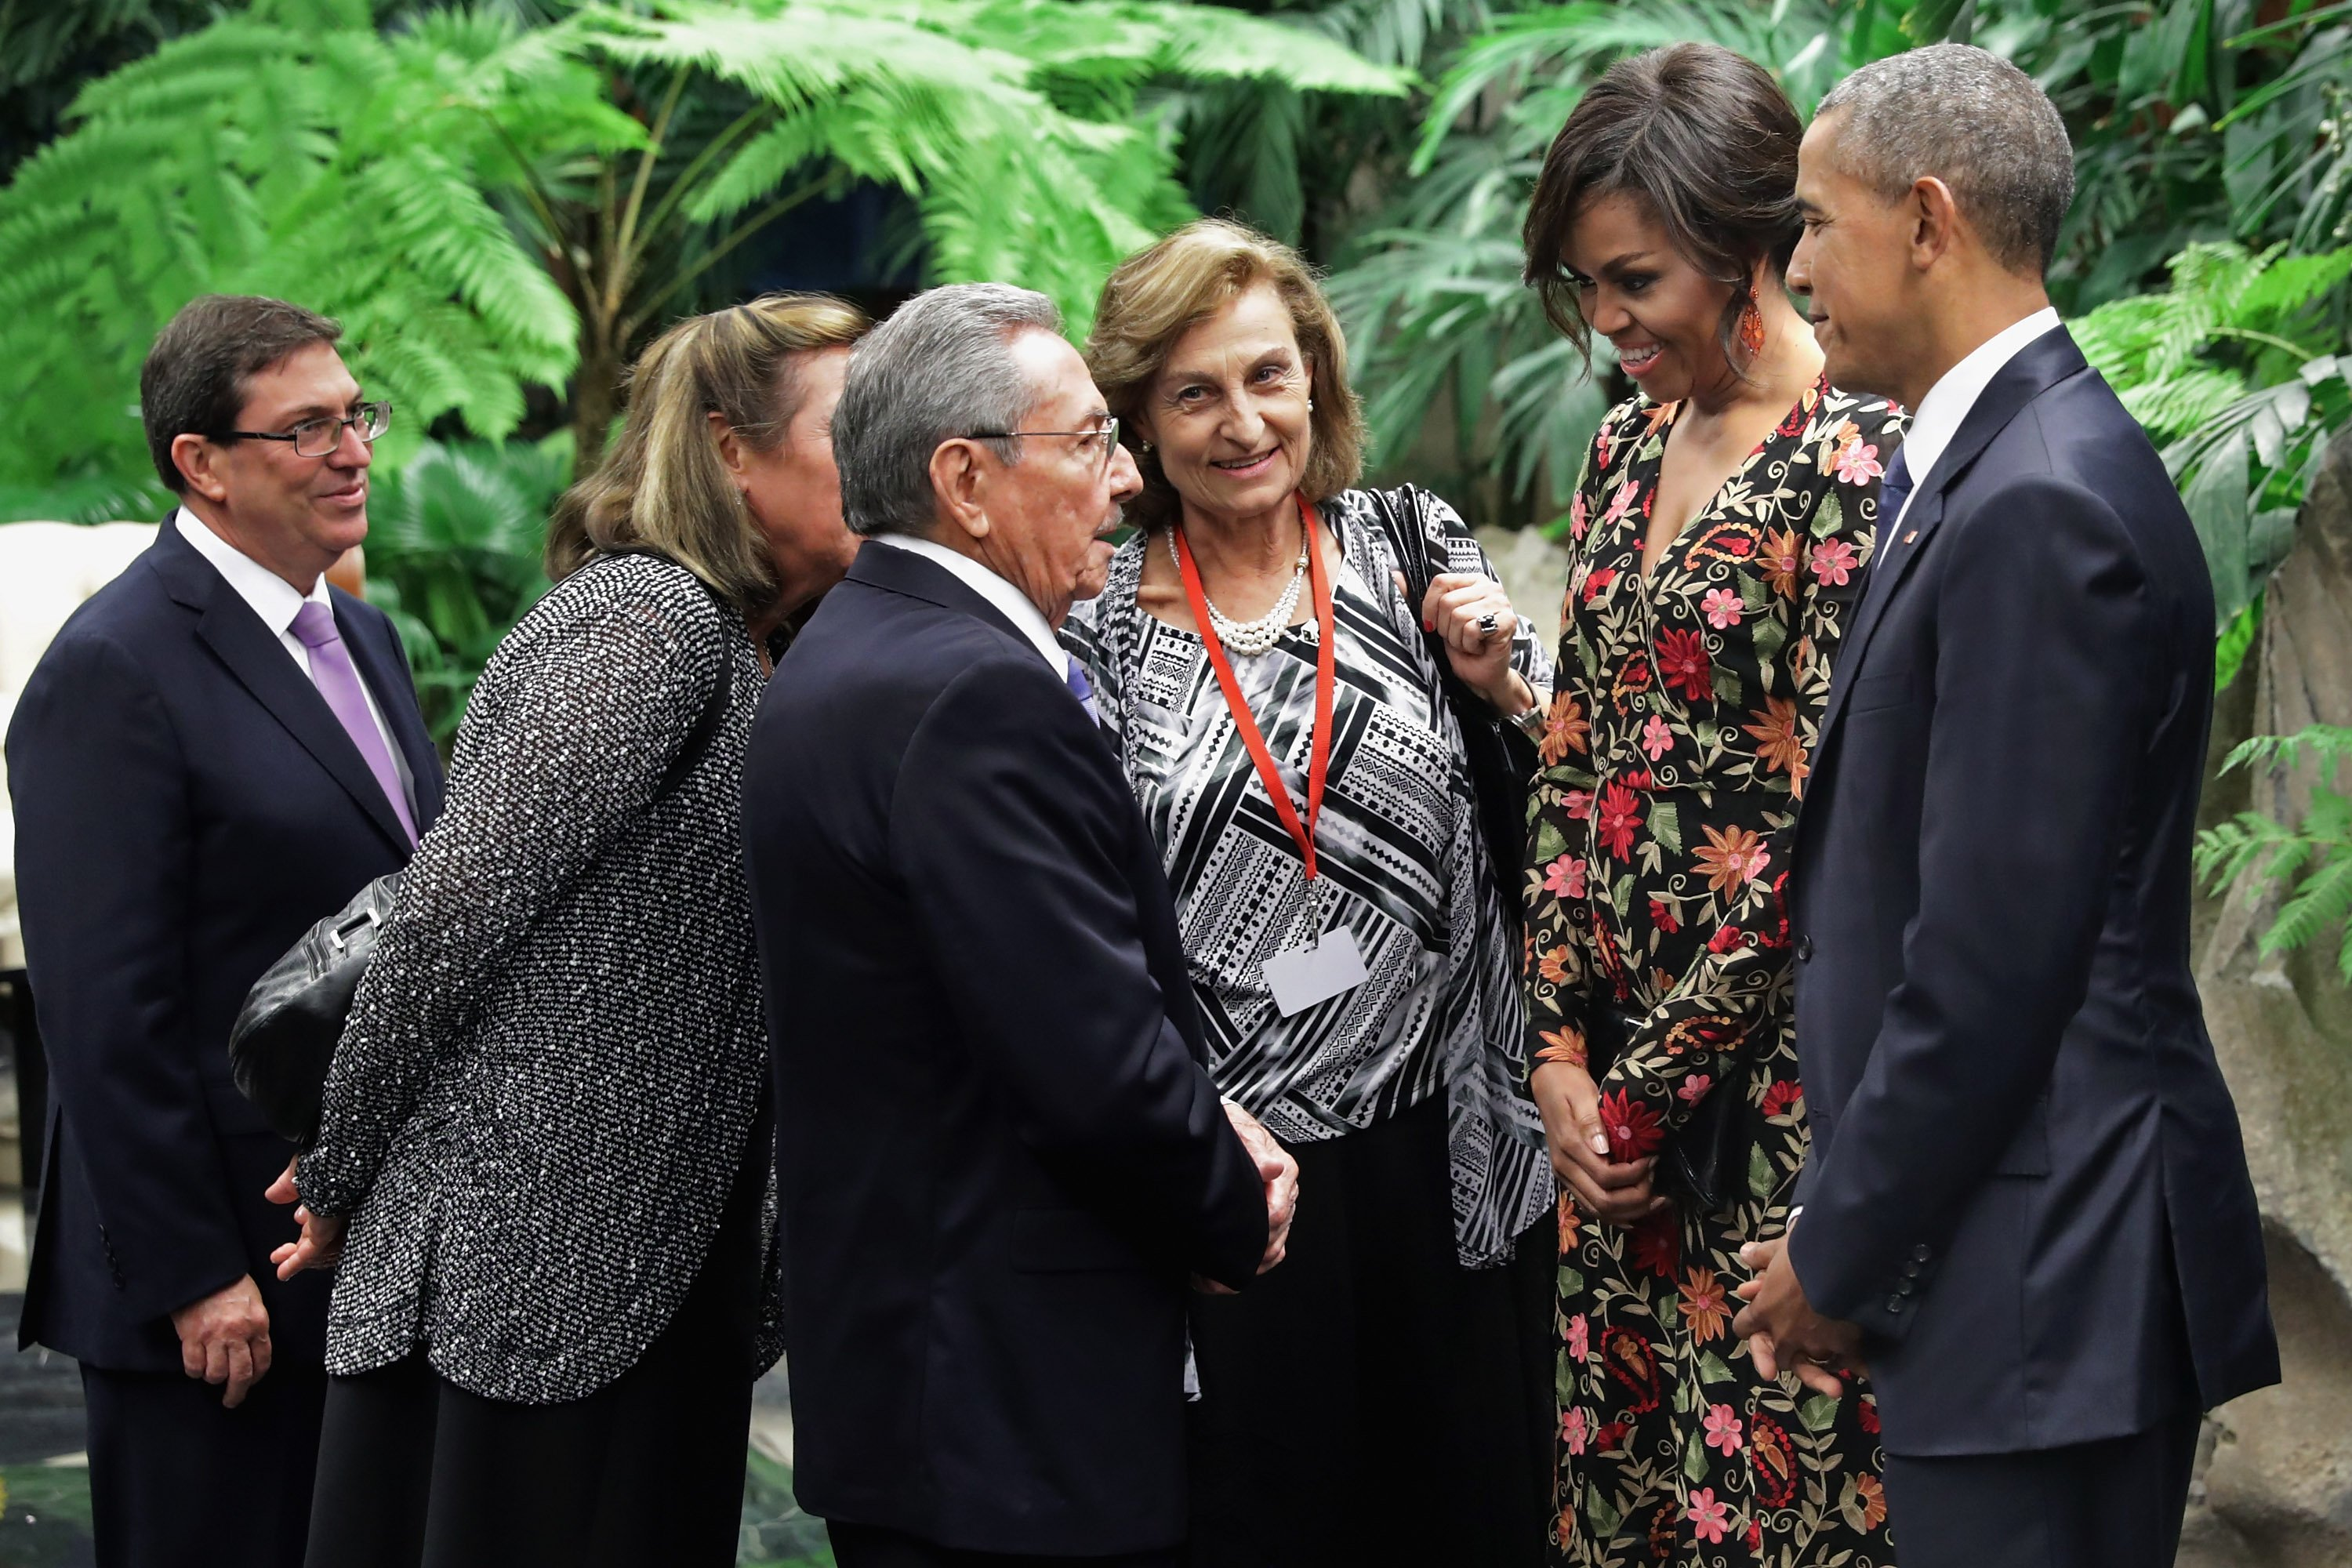 Raul Castro, Michelle Obama and President Obama greet before a state dinner at the Palace of the Revolution, in Havana, on March 21, 2016.